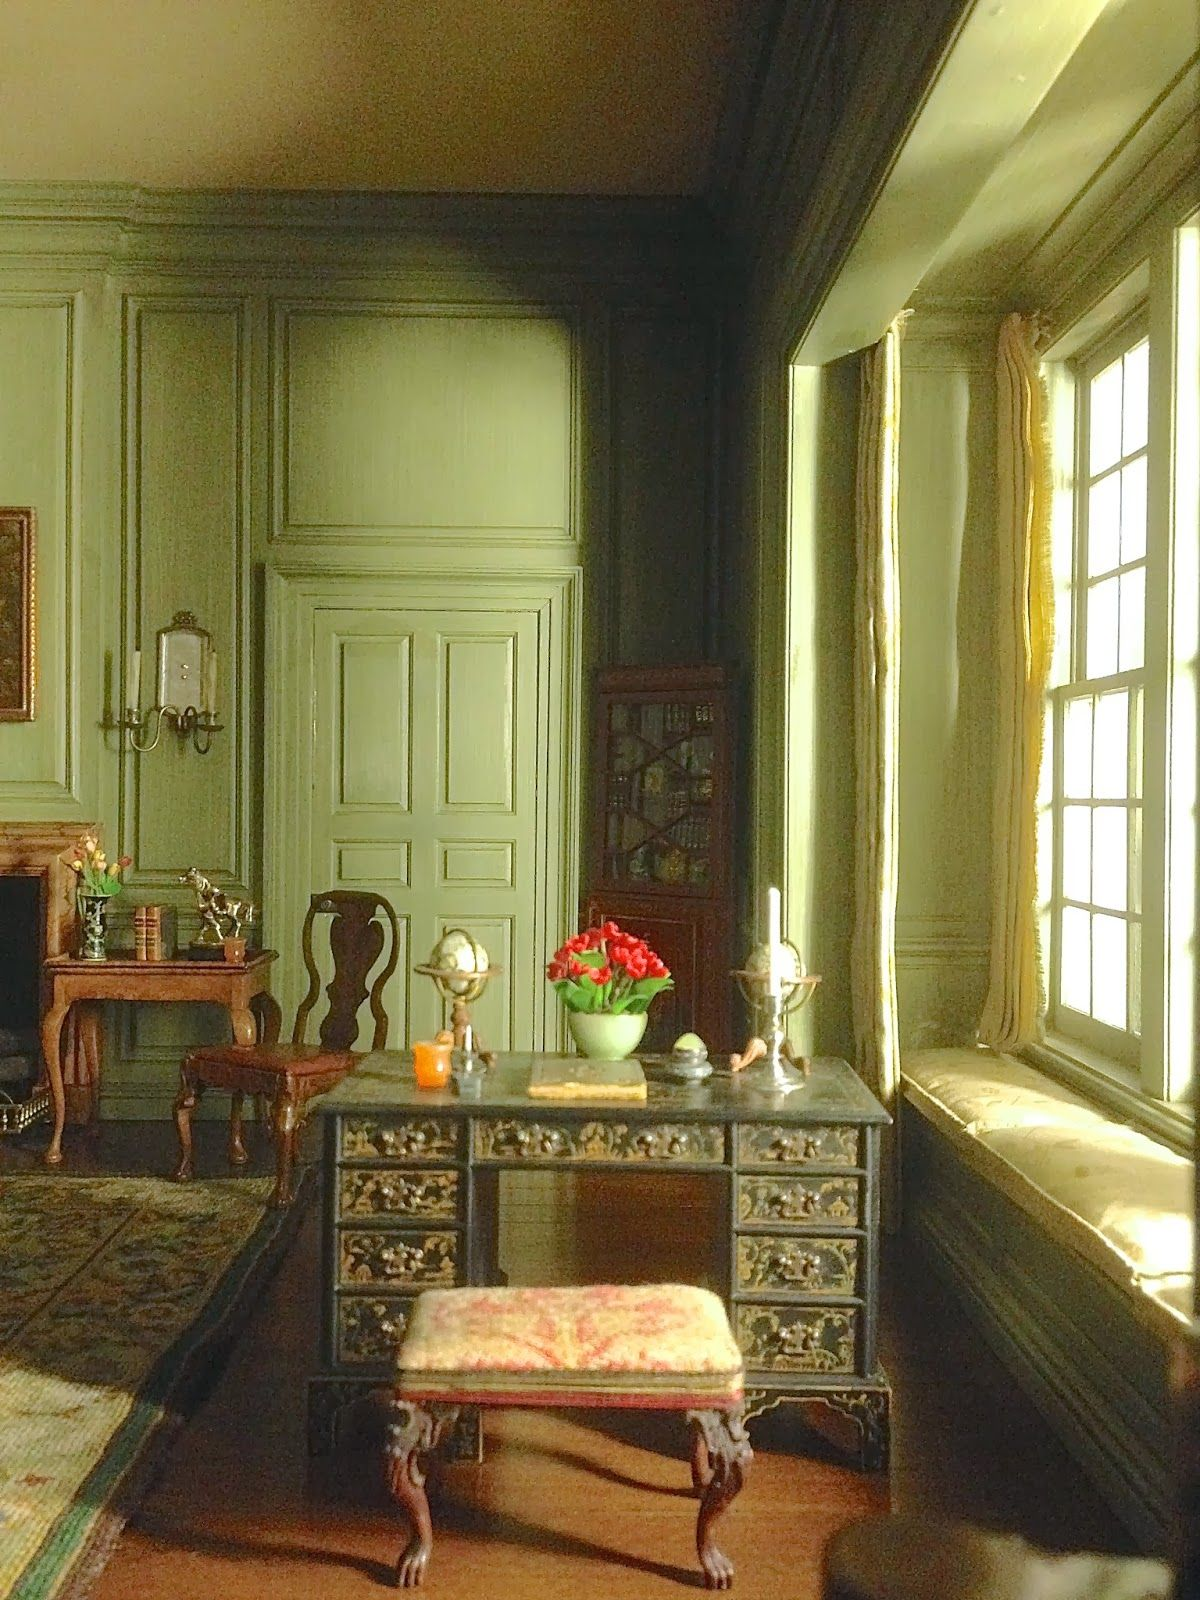 Susan's Mini Homes: Thorne Miniature Rooms - Exquisite reproductions of dollhouse sized rooms. #miniaturerooms